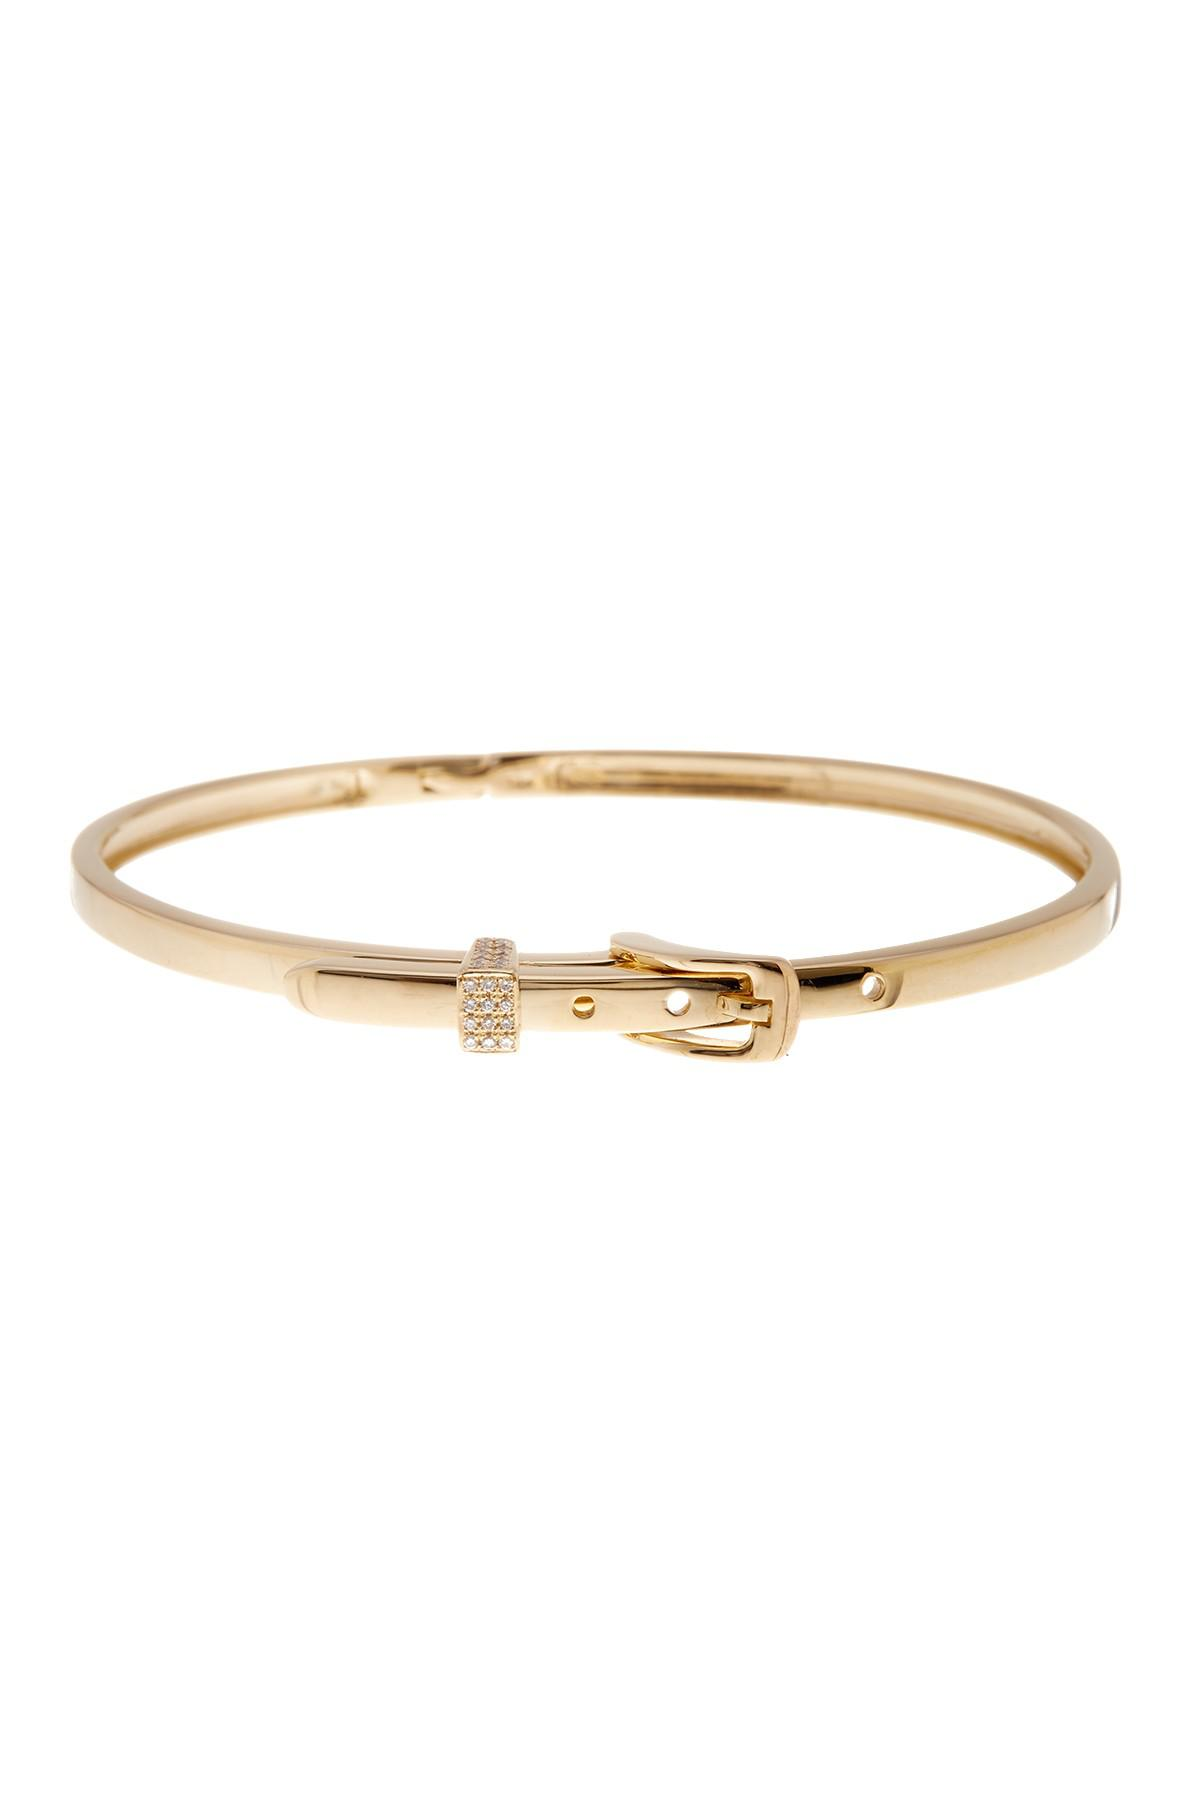 bangle bracelet white image diamond bangles bracelets thin in gold panel